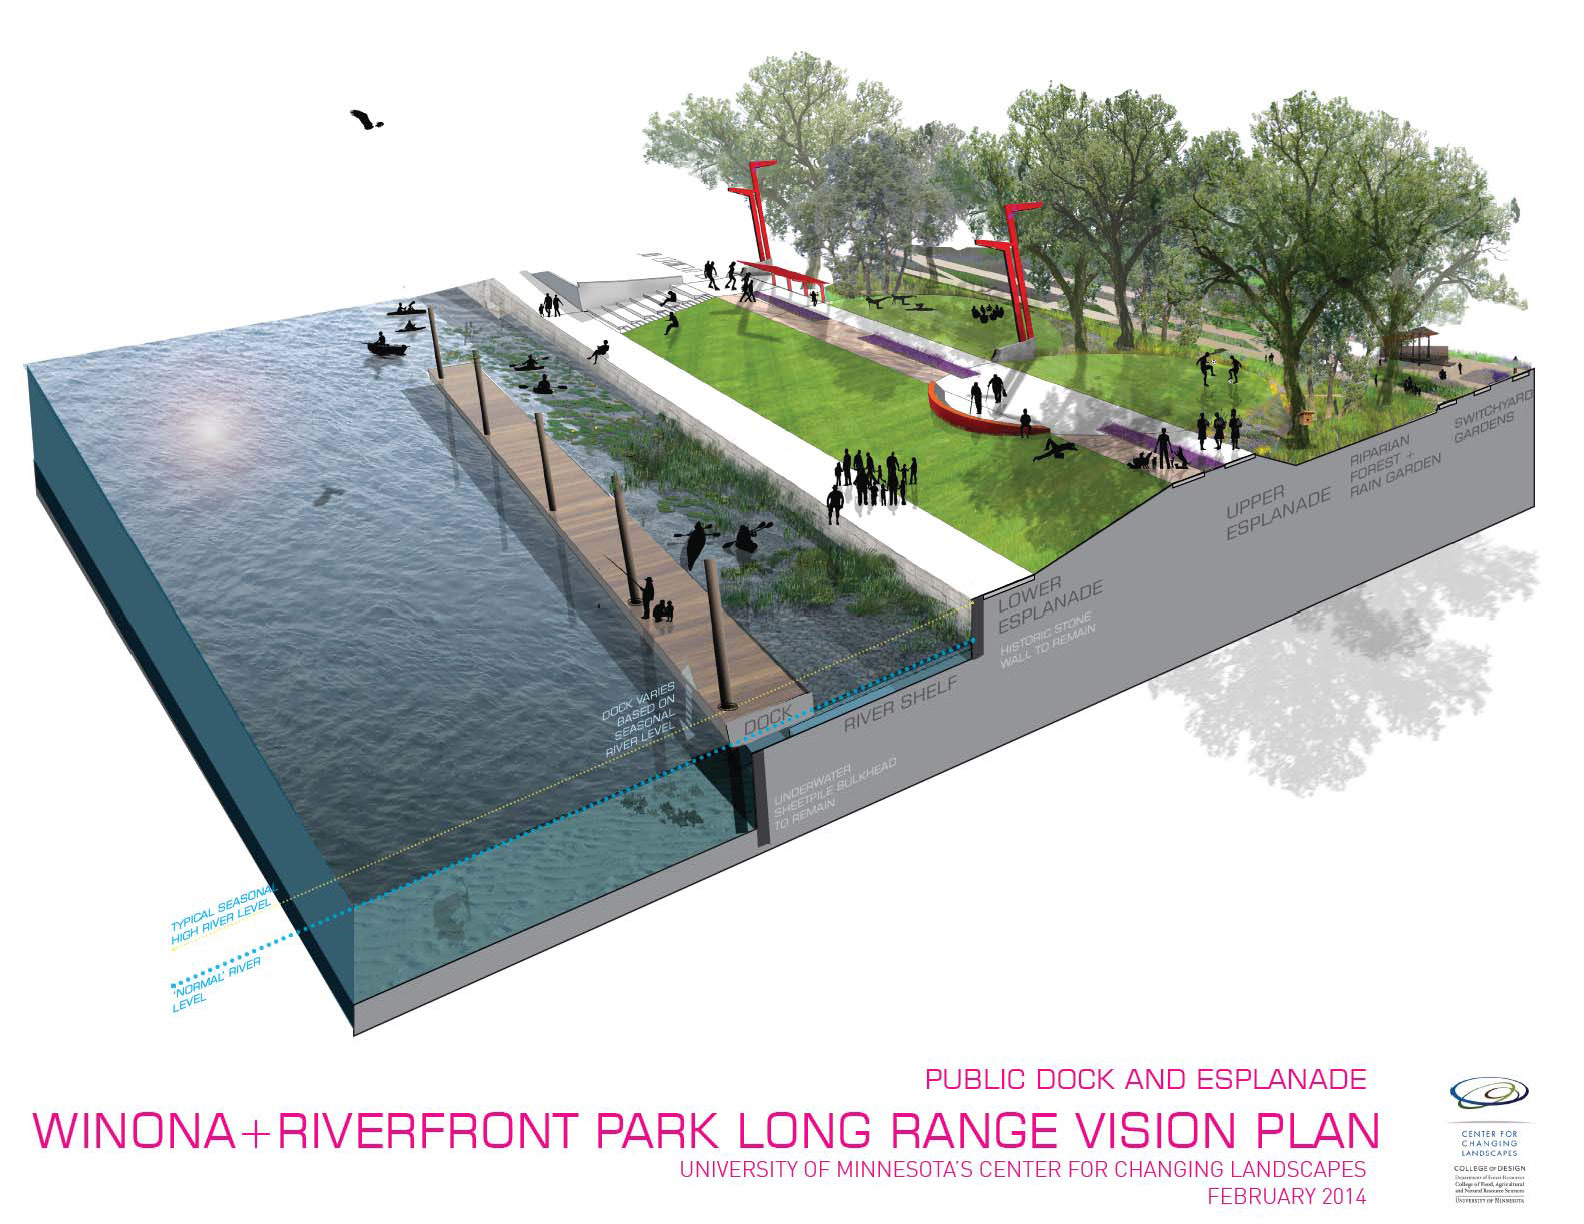 2014 Winona Riverfront Vision Plan_UMN CCL-dock and esplanadejpg.jpg